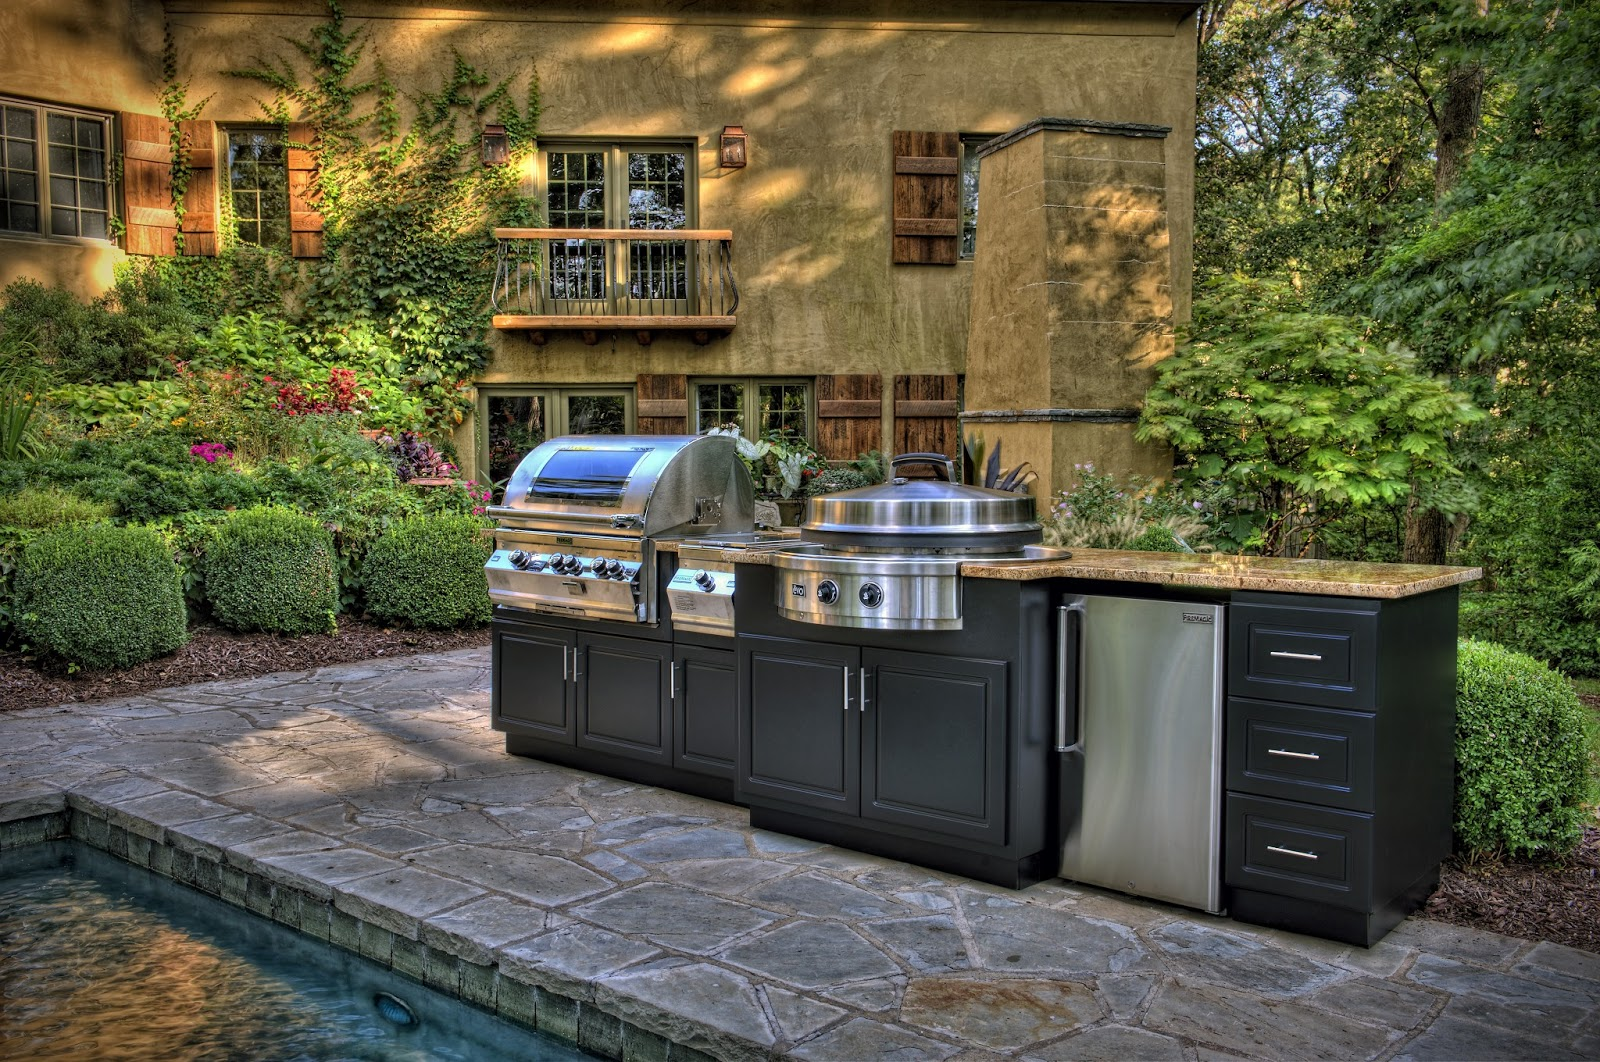 Mode concrete luxury outdoor kitchen importers for Luxury outdoor kitchen